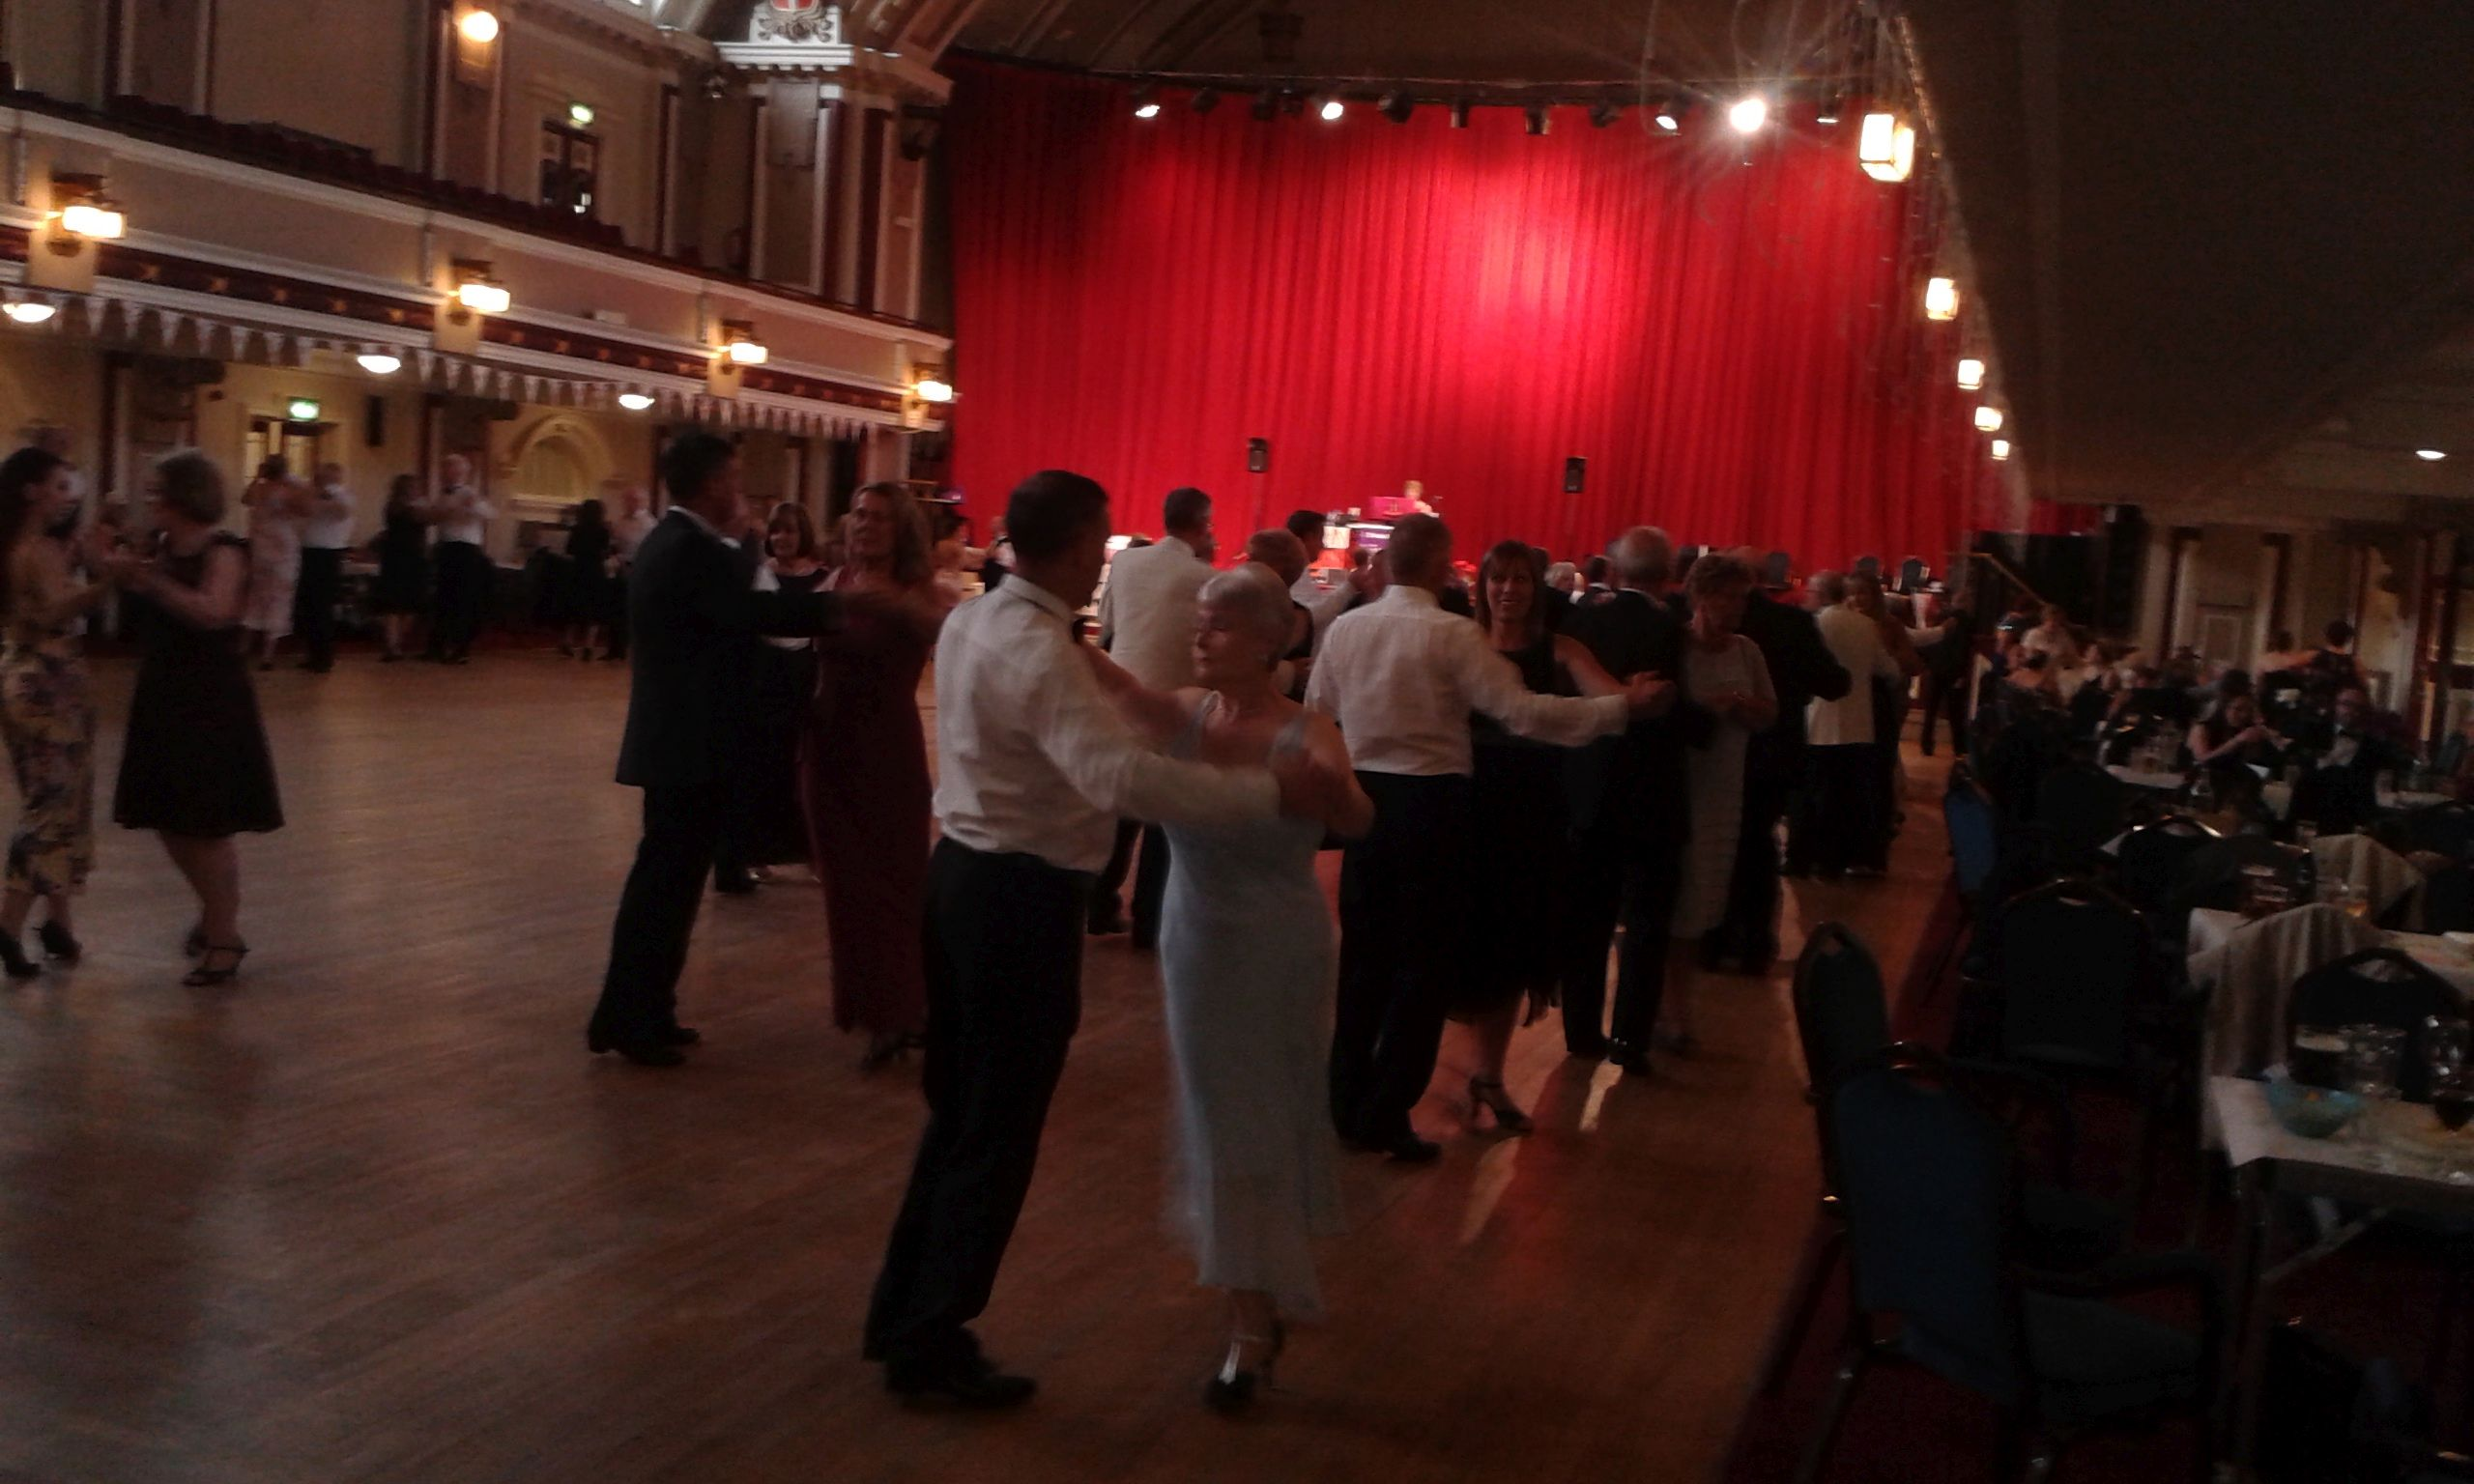 Ballroom Dancing @ Kings Hall, Stoke I